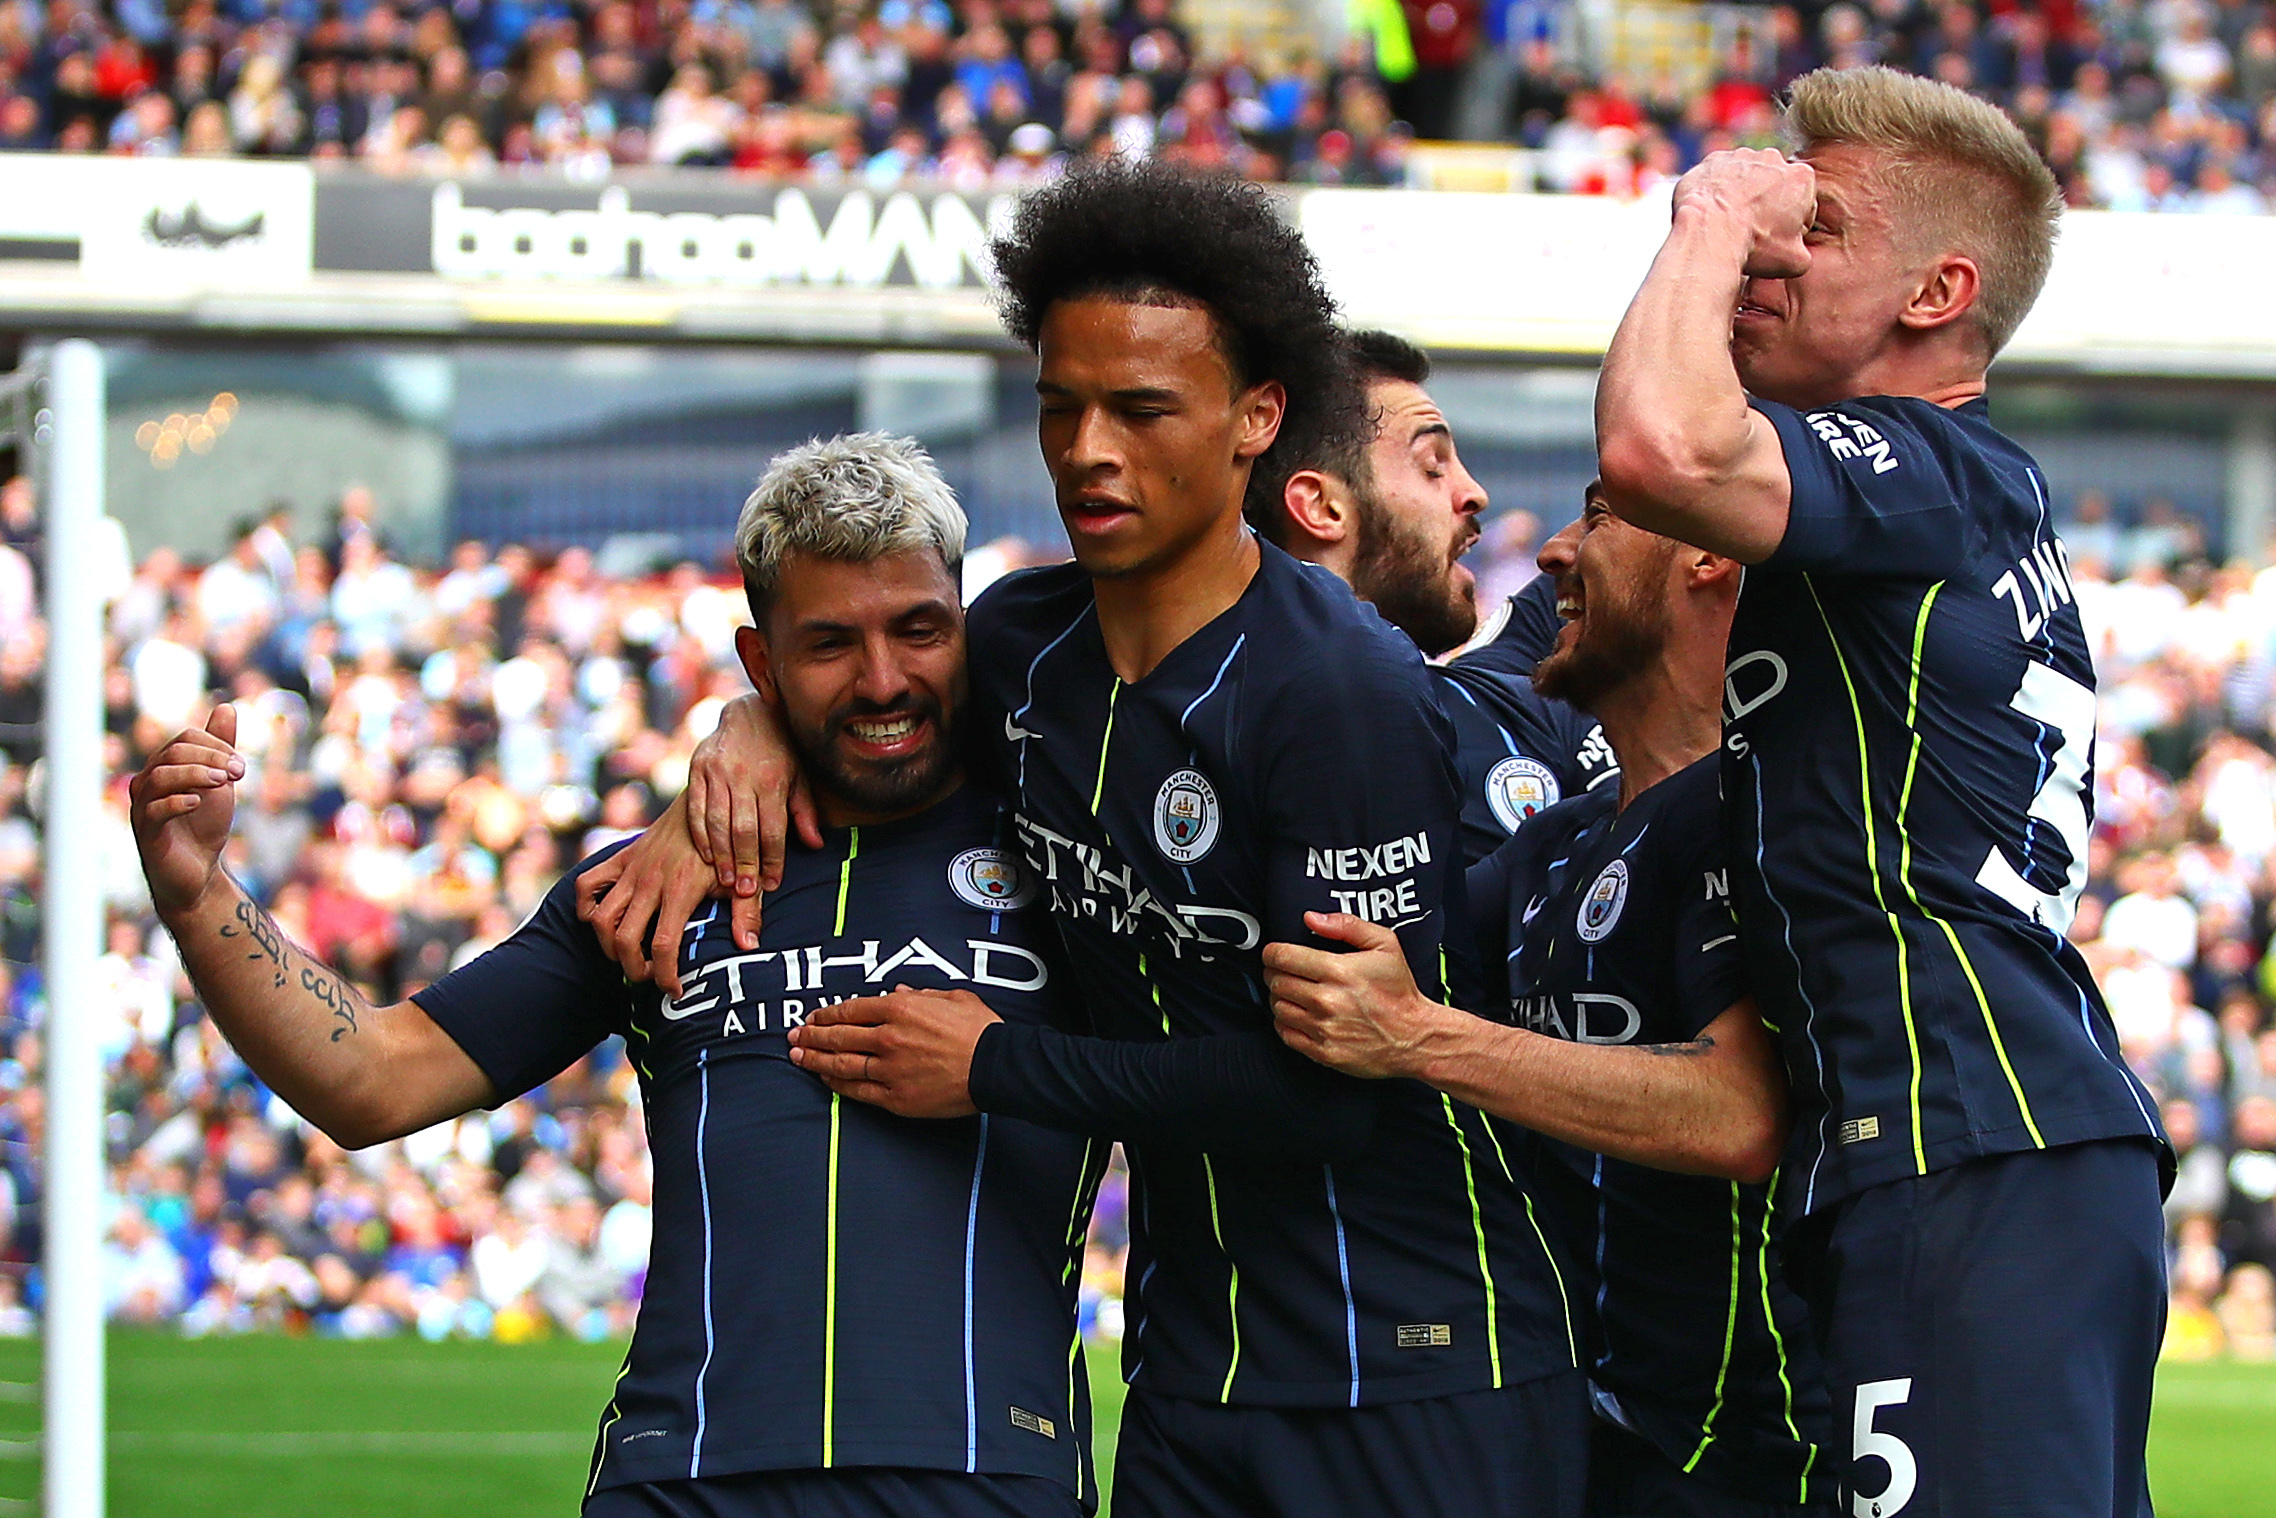 Premier League Results: 2019 EPL Week 36 Scores, Table and